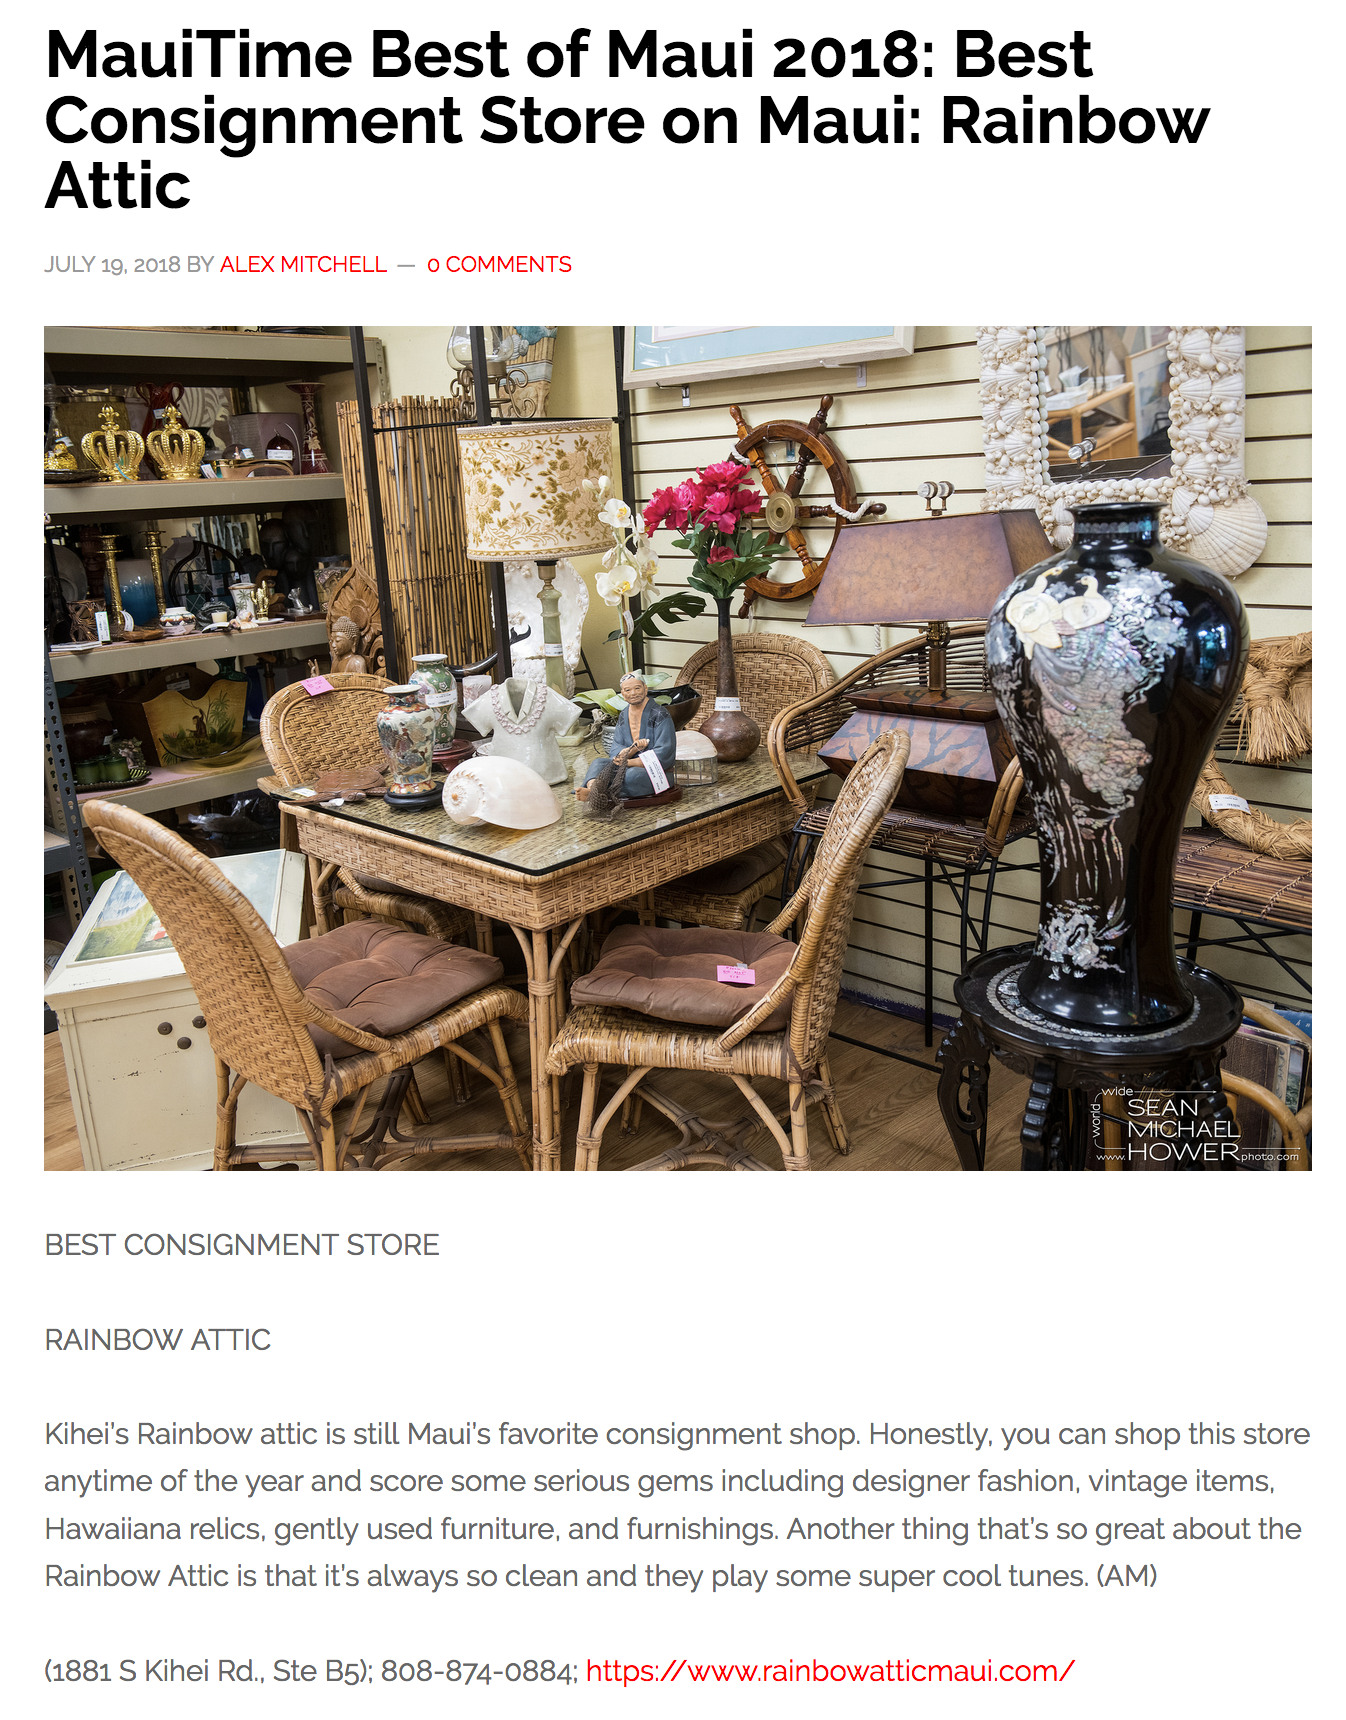 MauiTime Best of Maui 2018: Best Consignment Store on Maui: Rainbow Attic